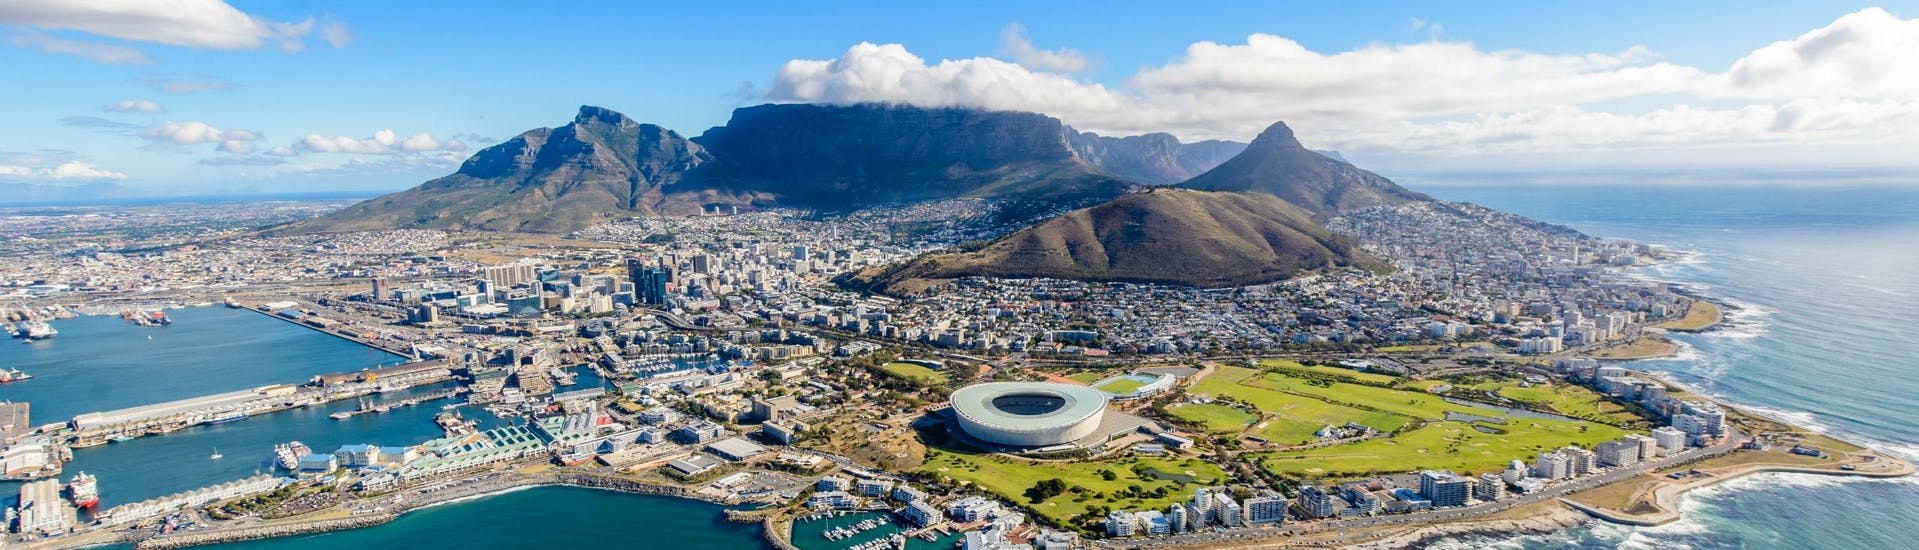 An aereal view of Cape Town, where visitors can go paragliding from Signal Hill.